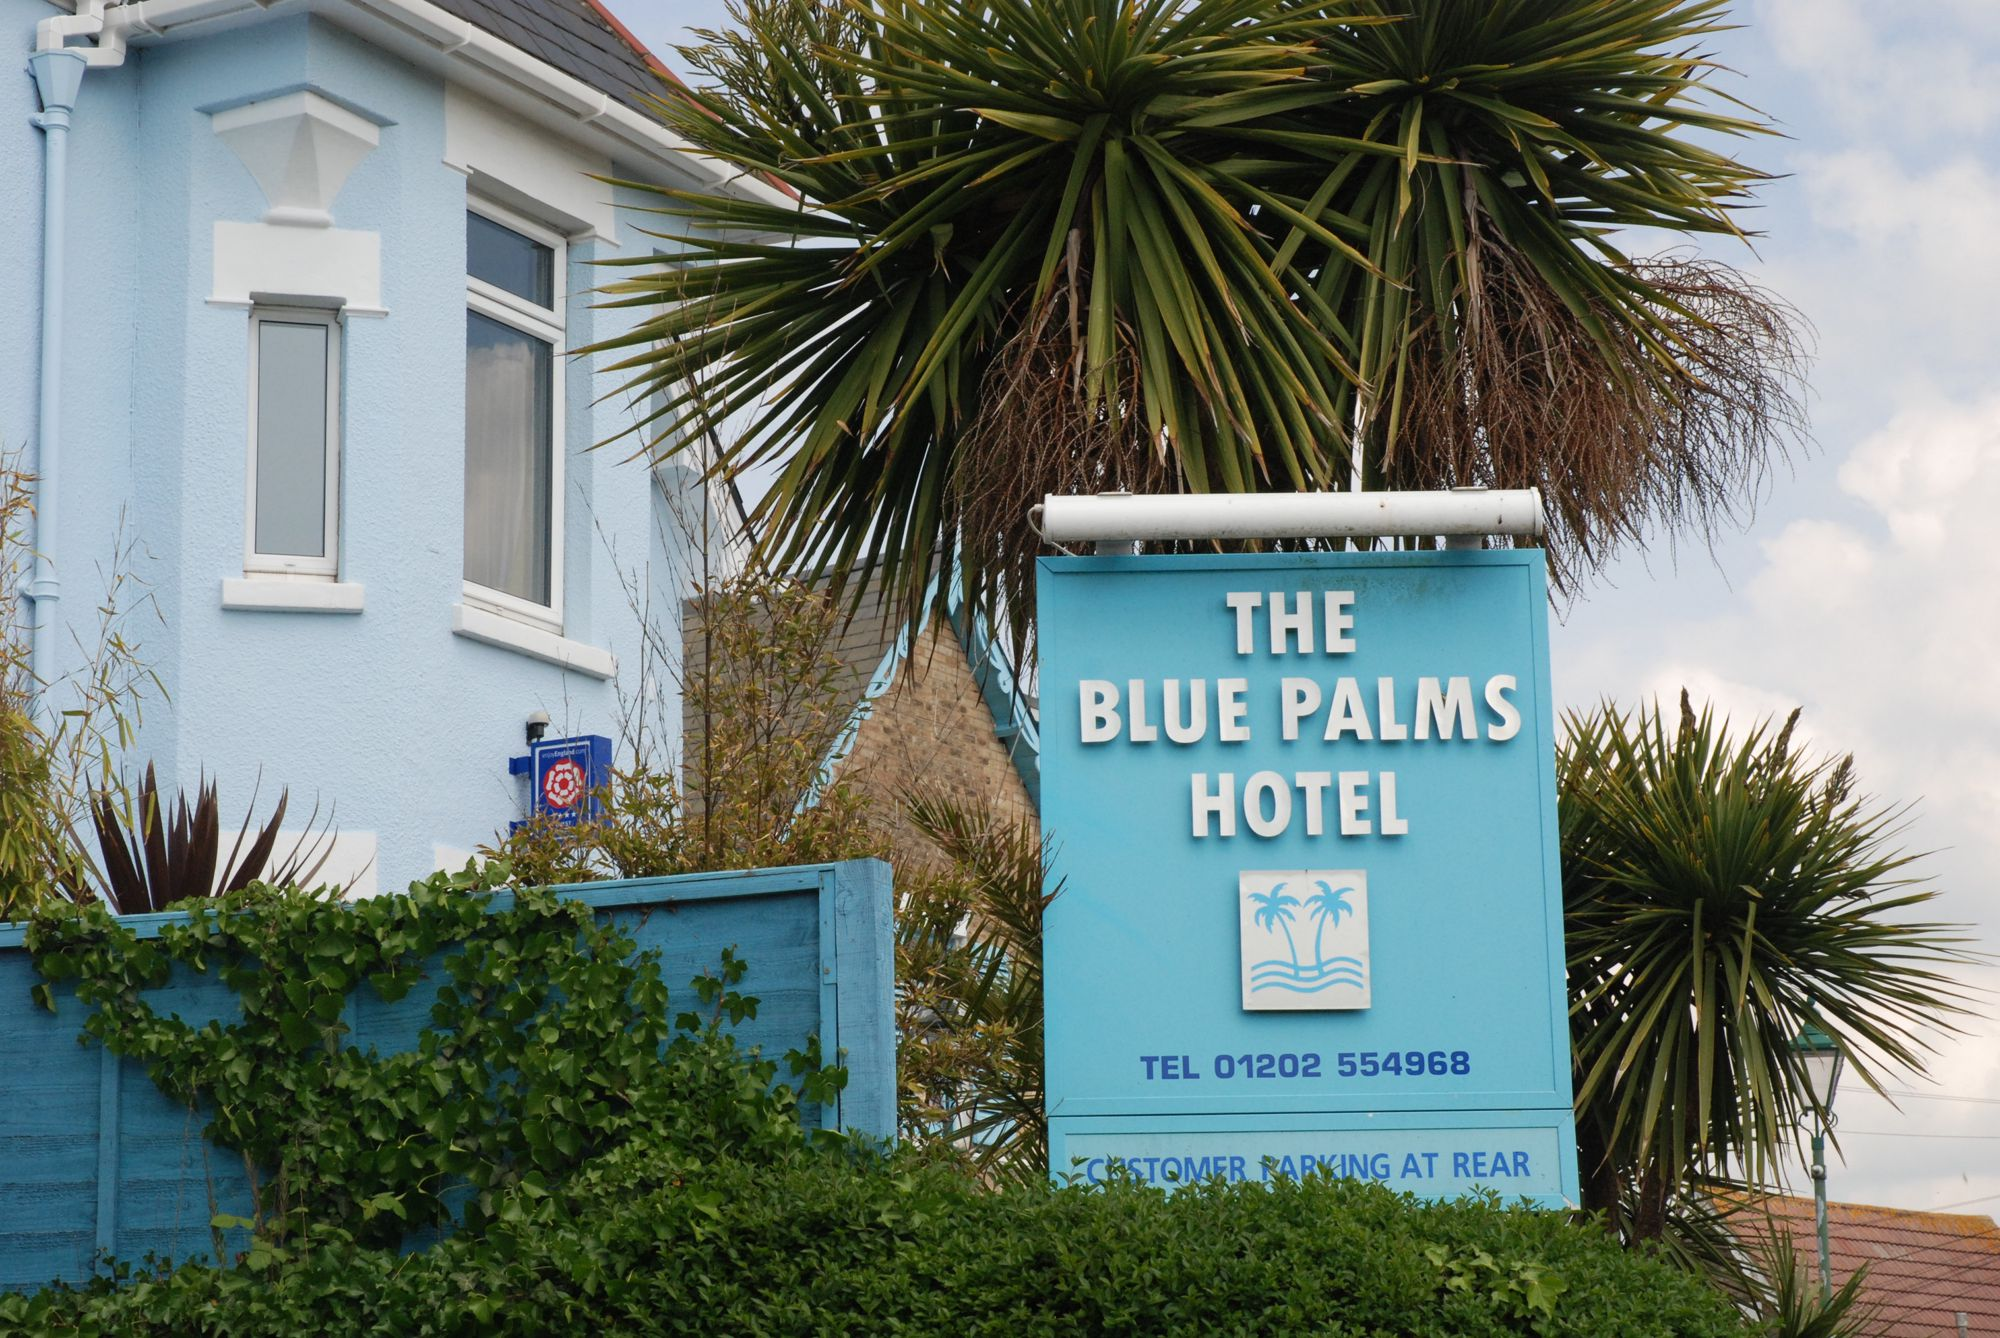 B&Bs in Bournemouth holidays at Cool Places